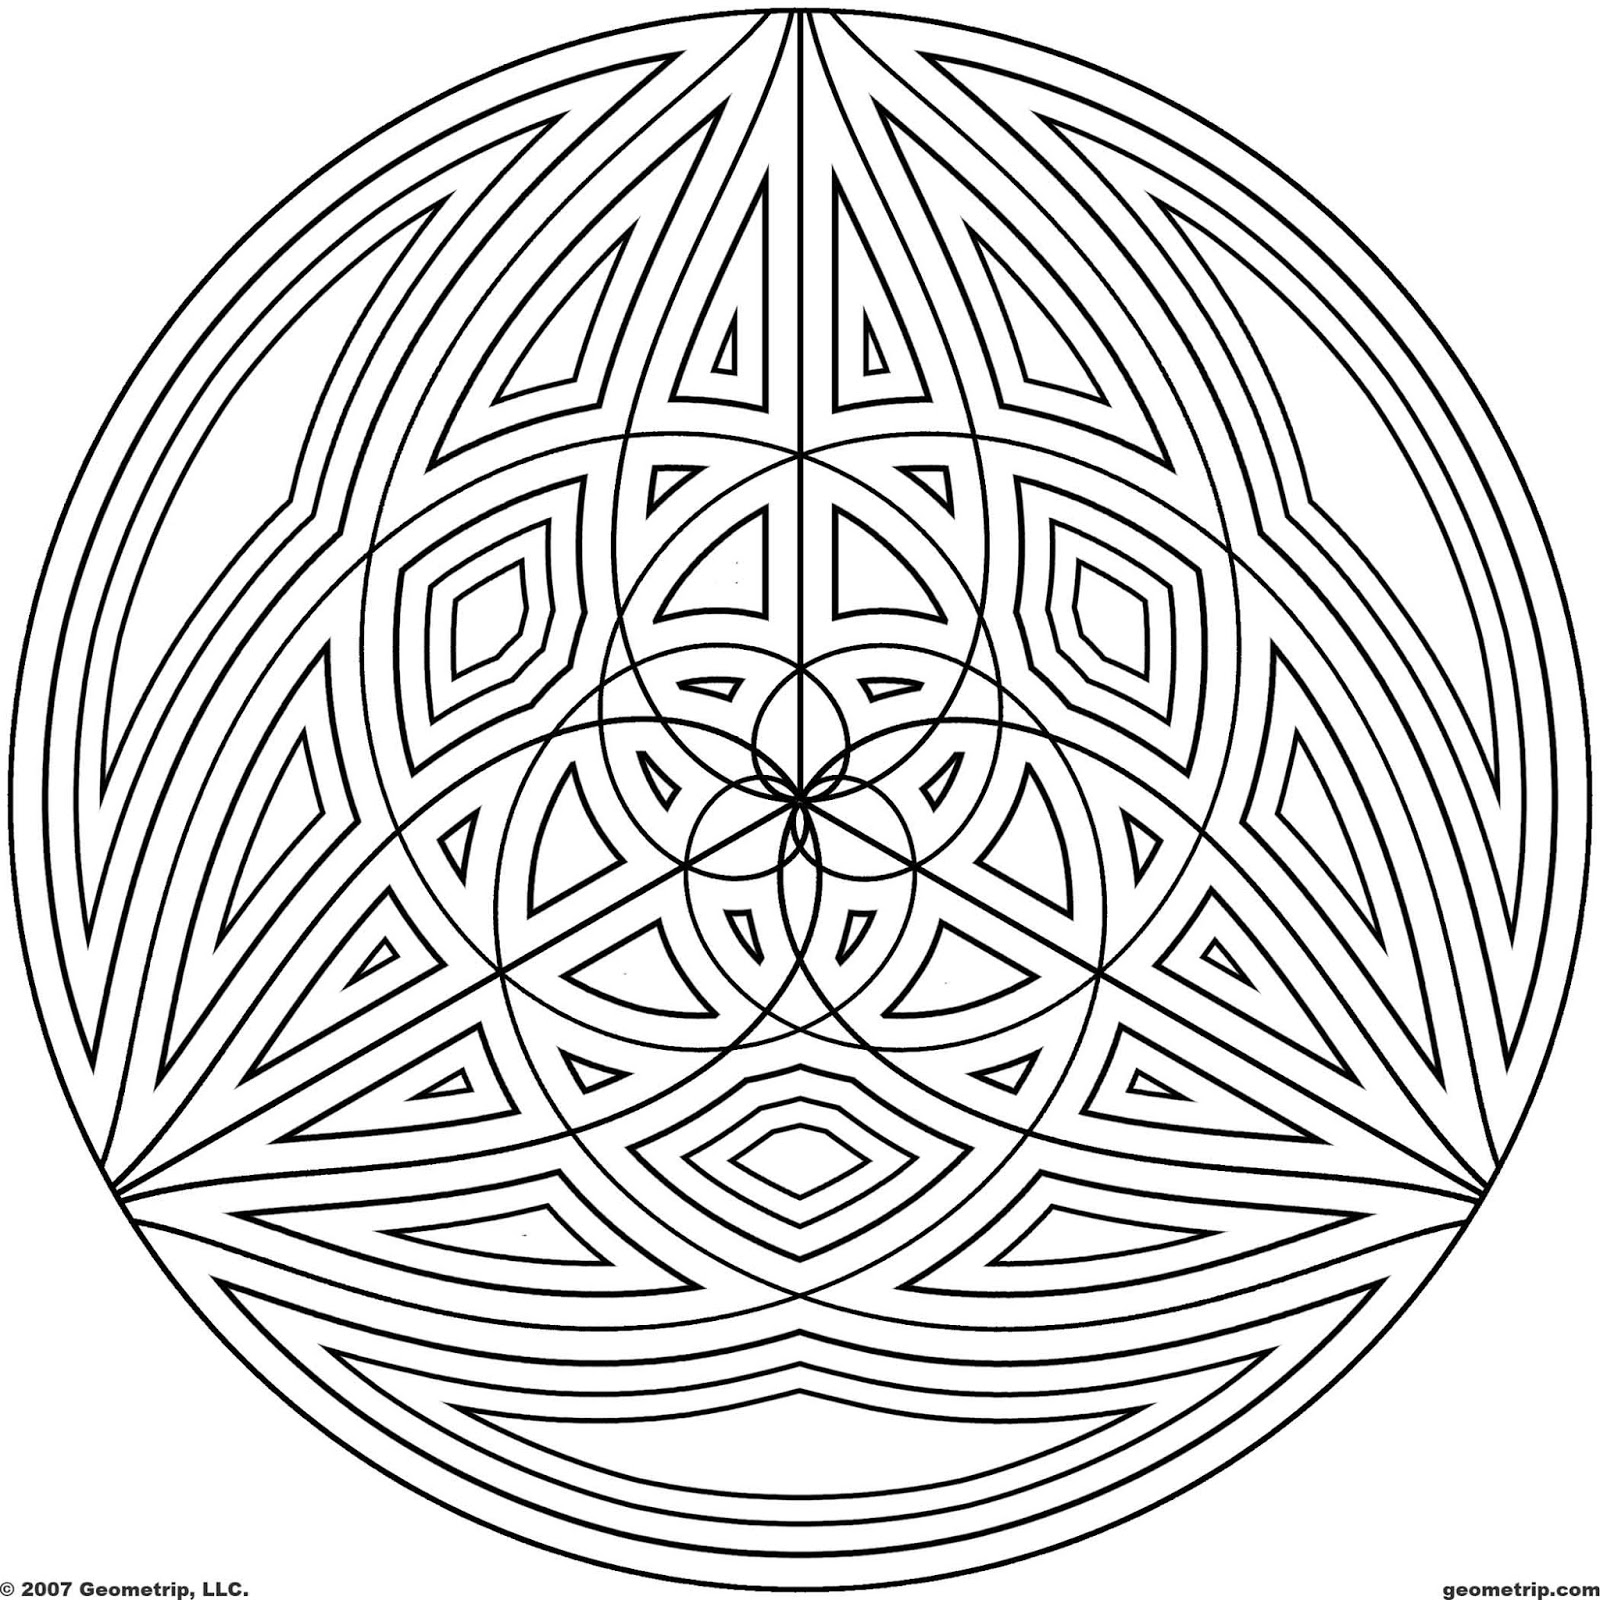 coloring pages of cool designs coloring pages cool designs coloring pages az coloring cool of pages coloring designs